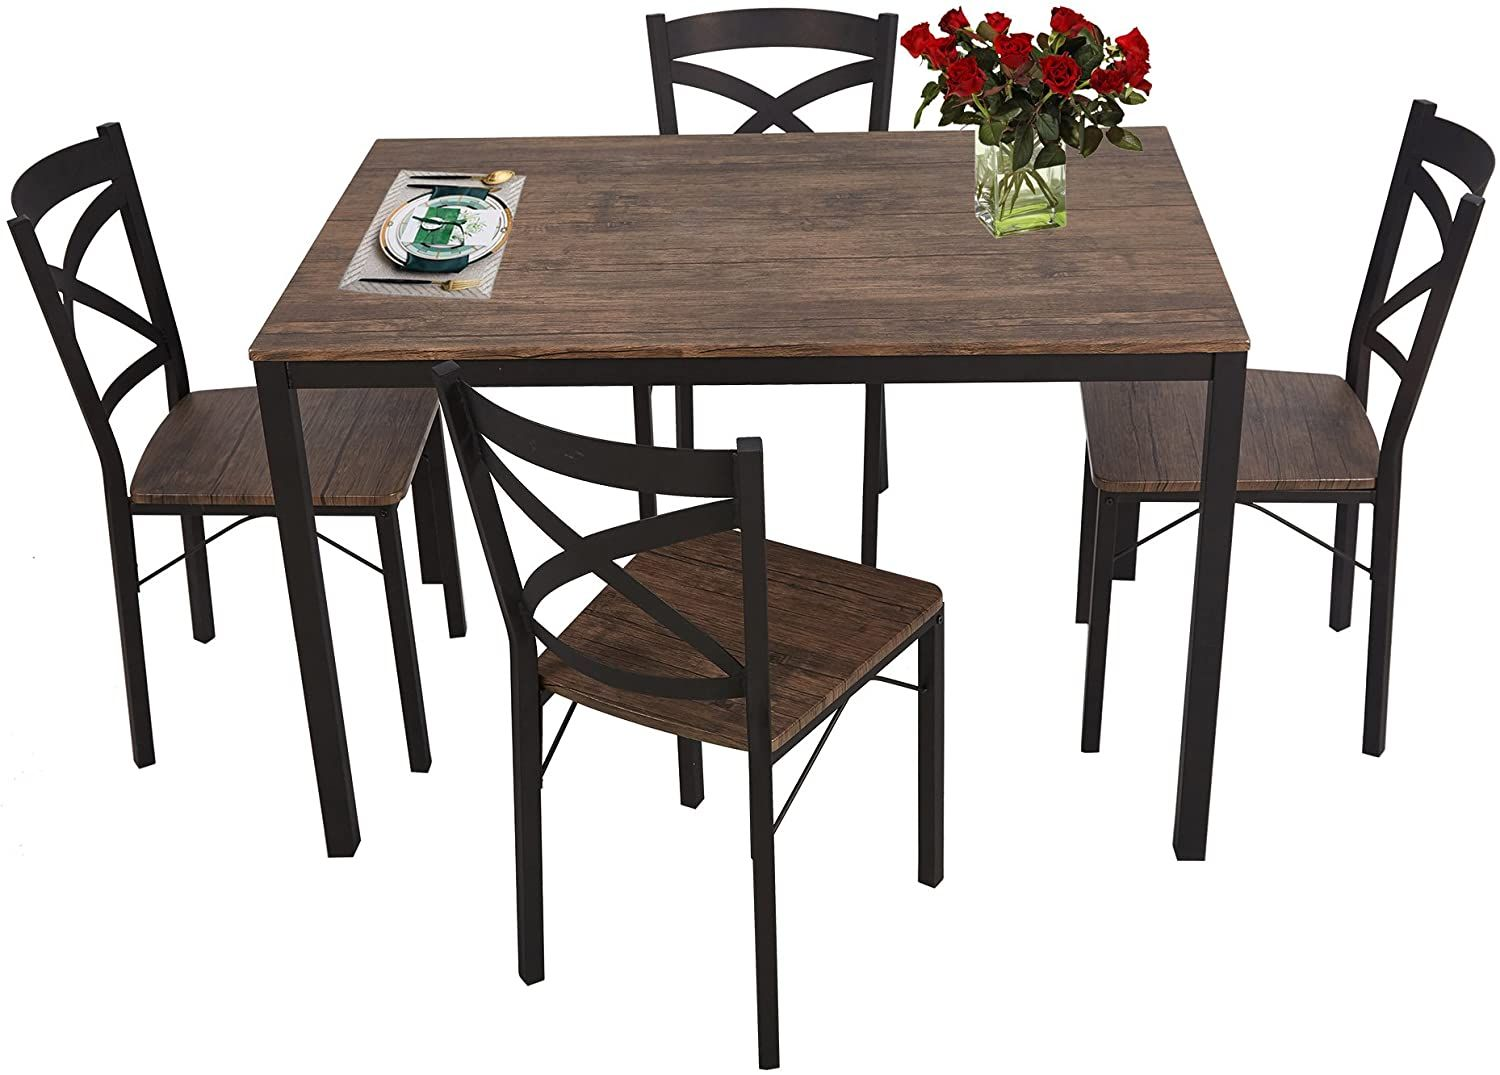 Luckyermore 5 Piece Dining Table Set For 4 Chairs Wood And Metal Kitchen Table Modern And Sleek Dining Table Setting Dining Table Wood Dining Table